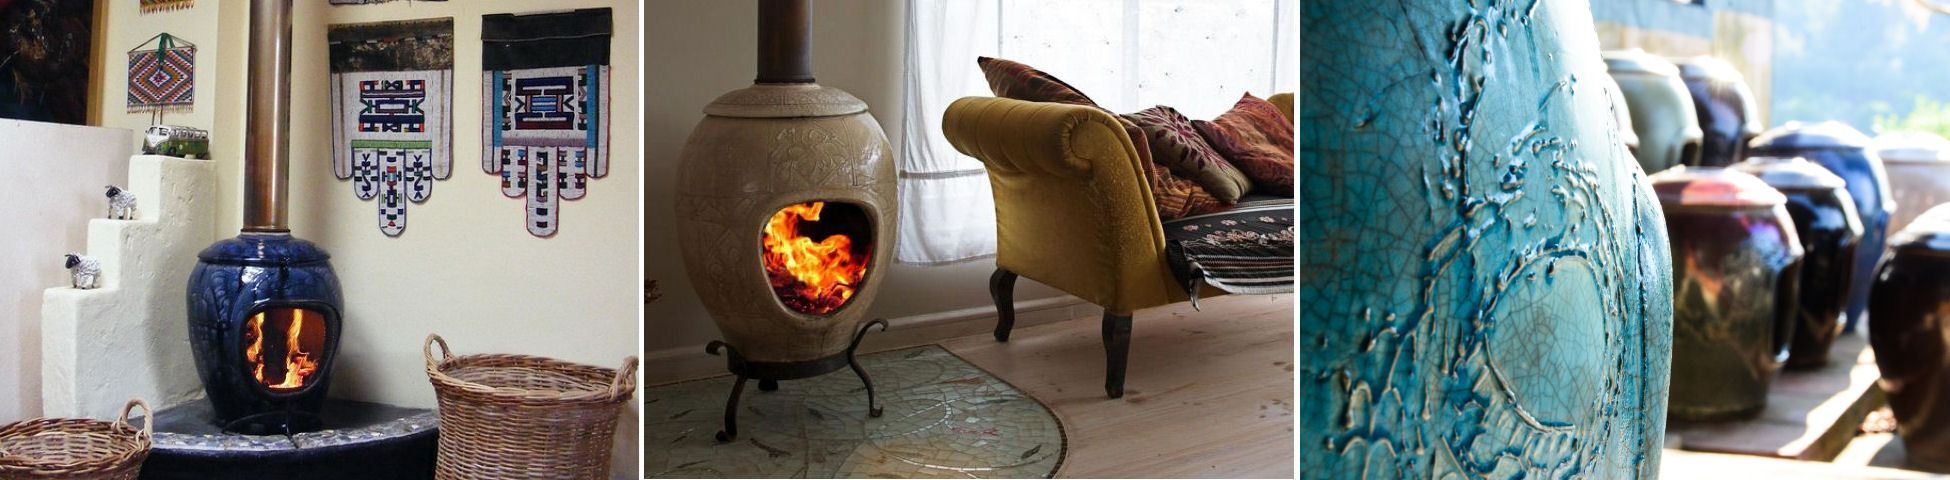 Hot Art original free standing ceramic fireplaces